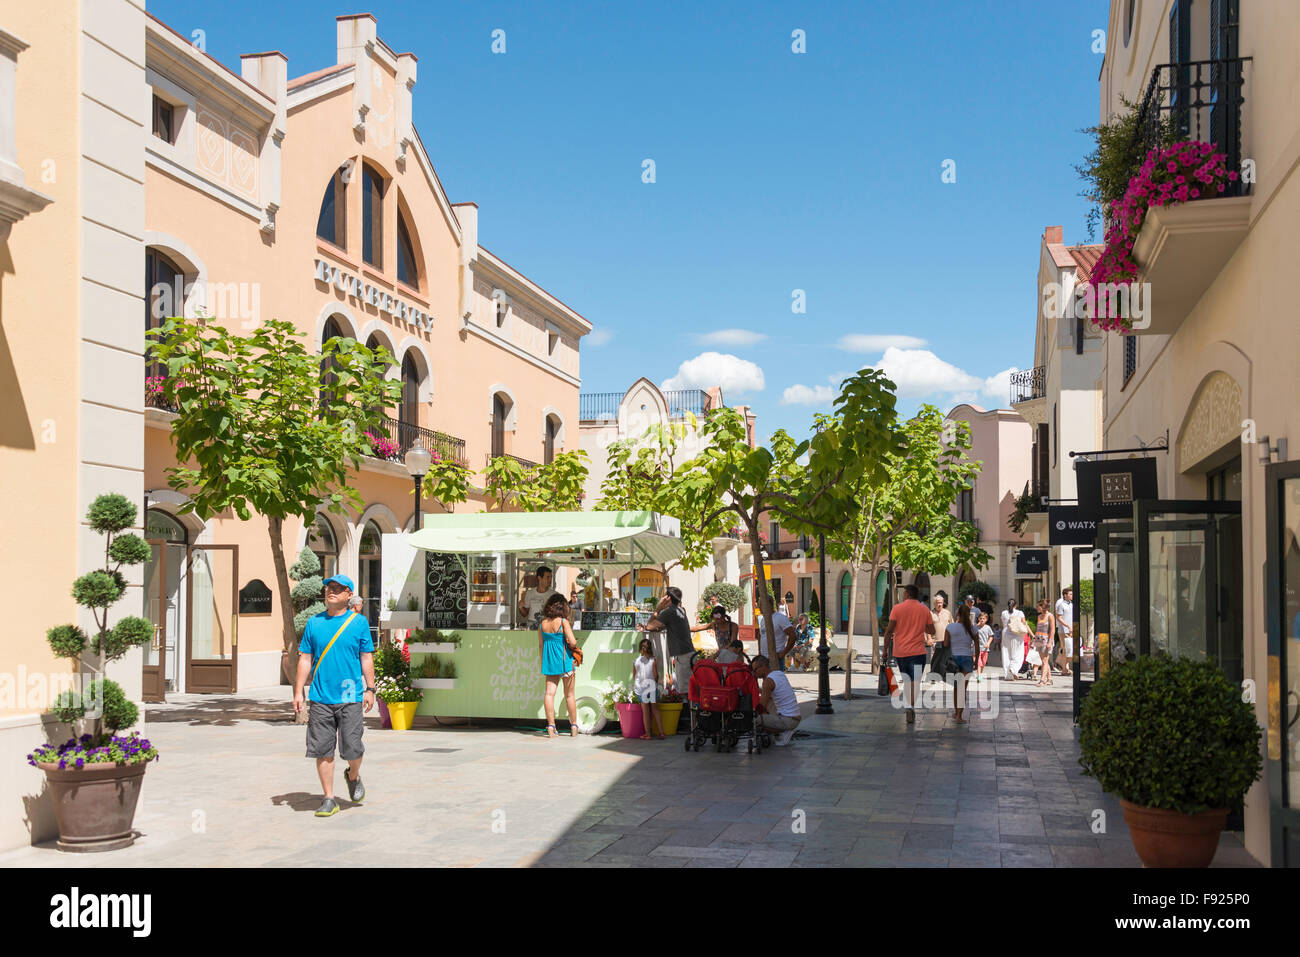 La roca village designer outlet shopping la roca del vall s stock photo royalty free image - Outlet lamparas barcelona ...